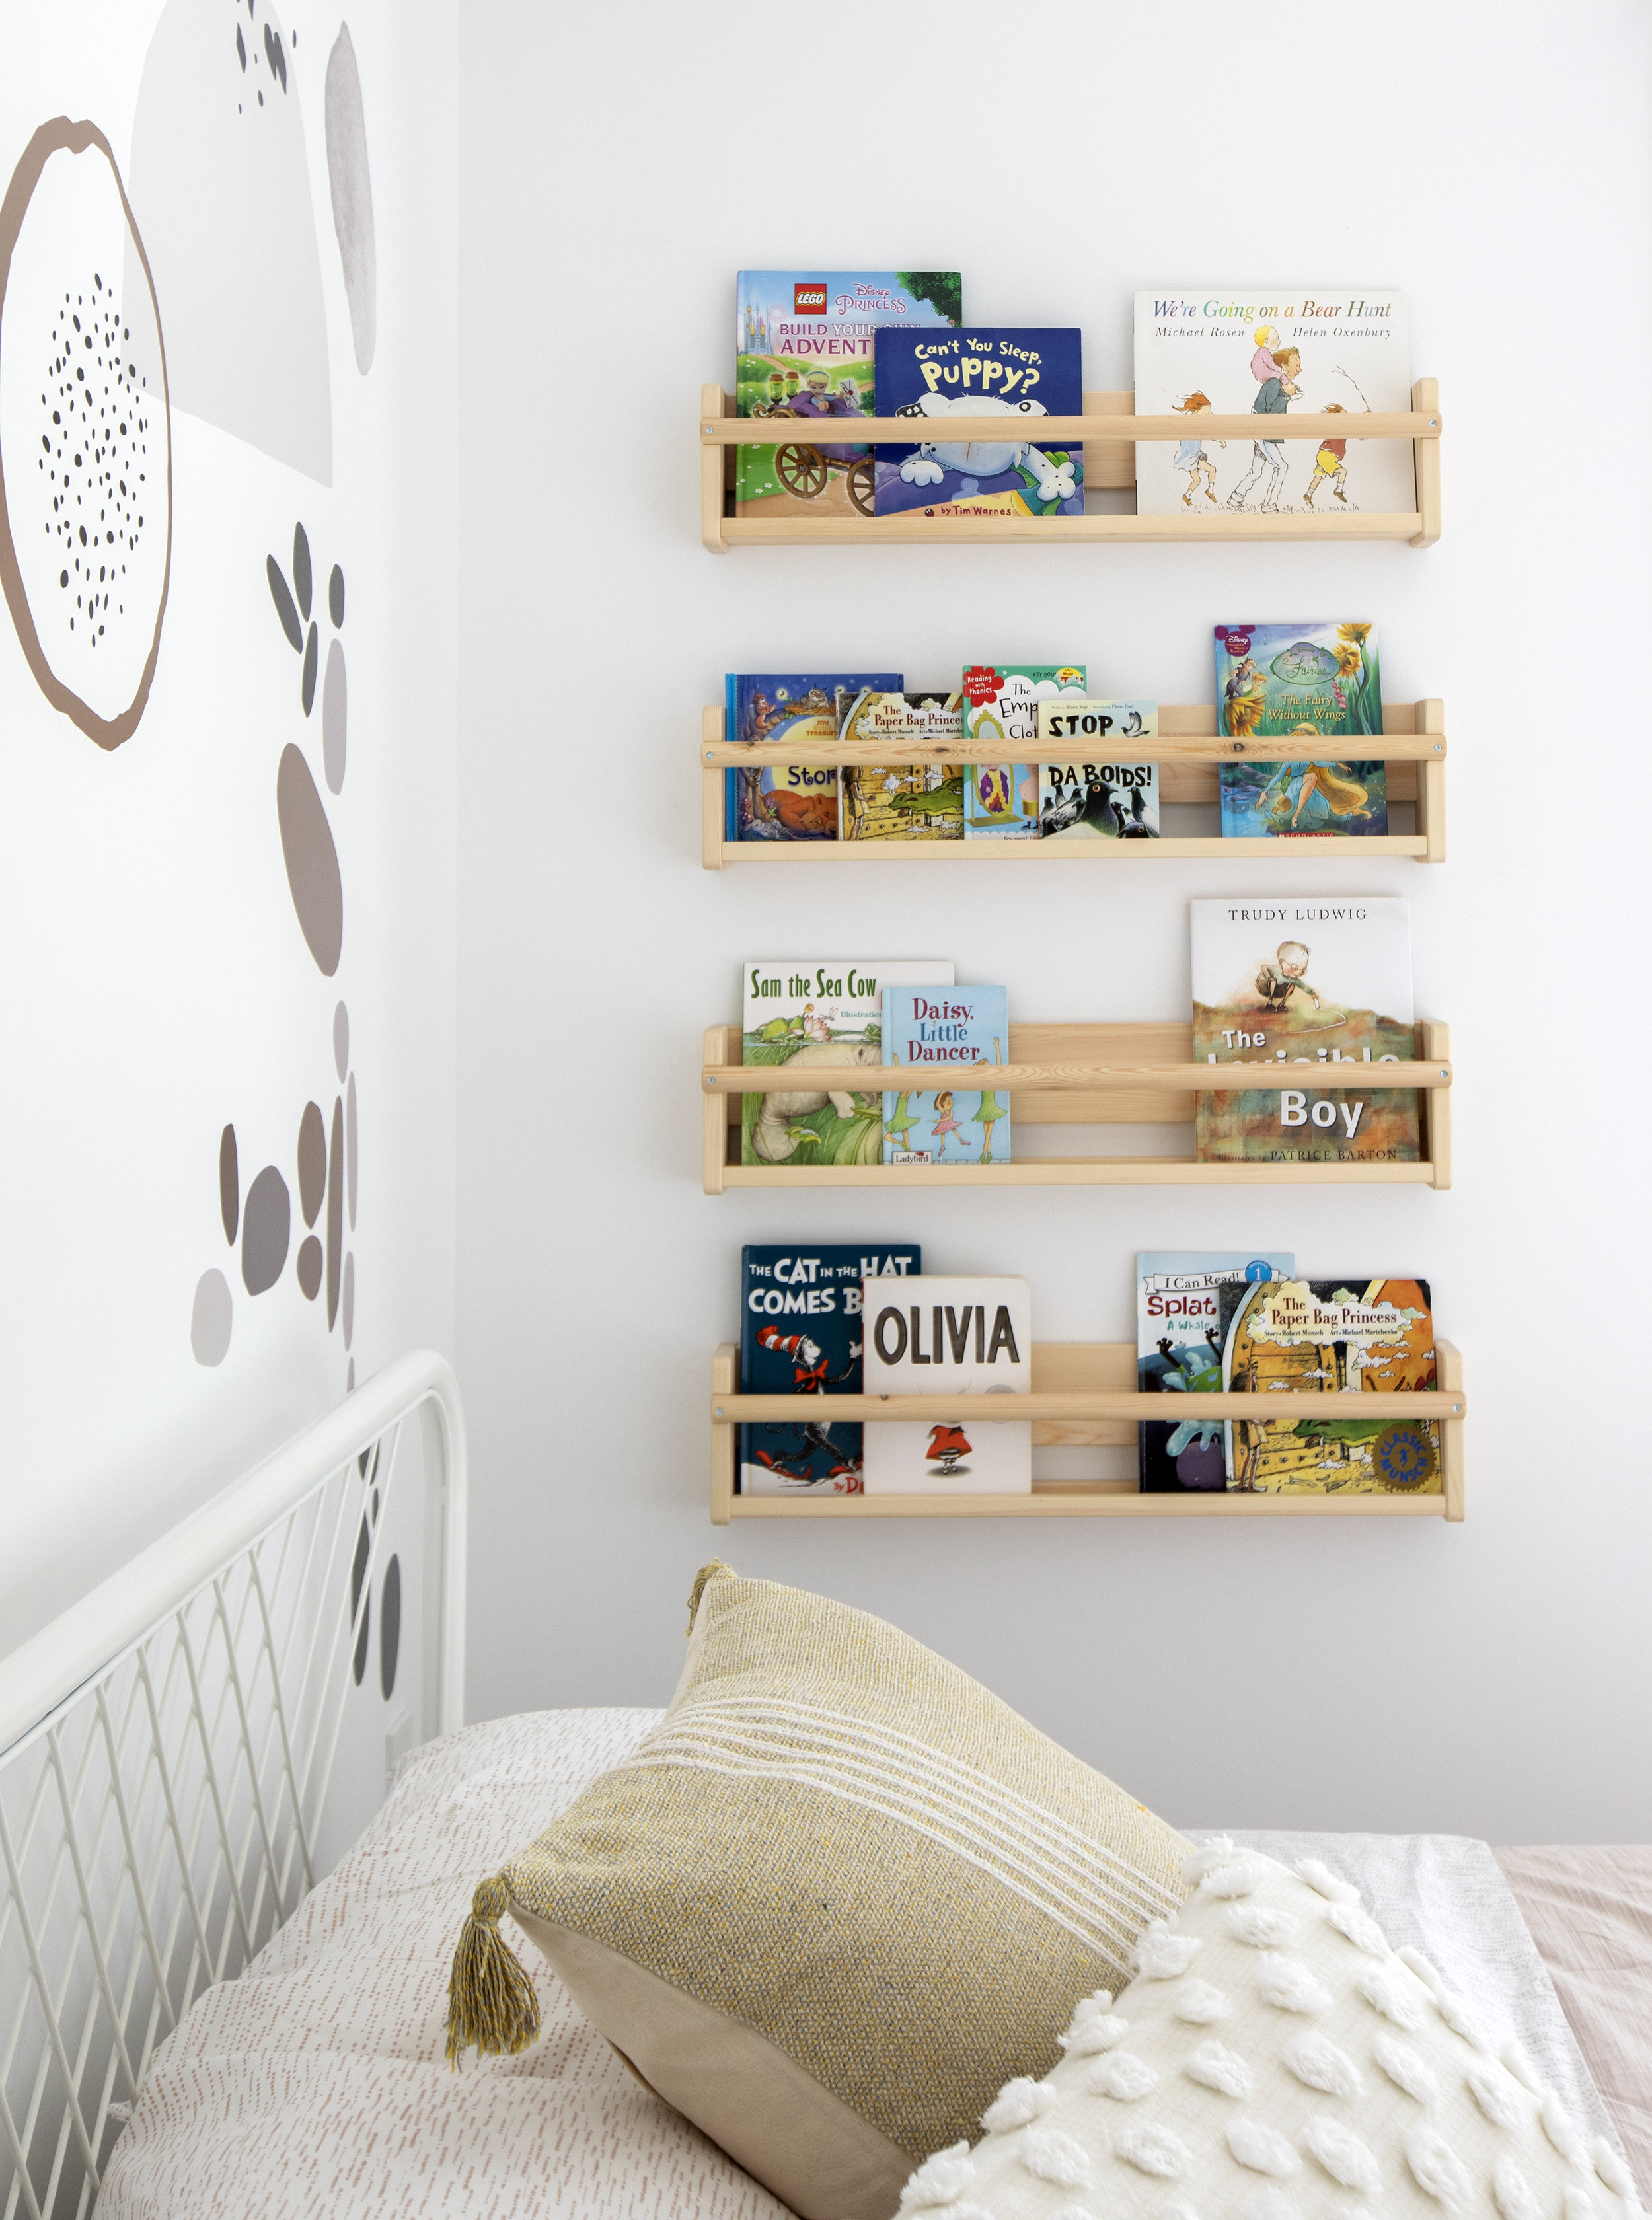 A custom built book rack was installed next to the bed.